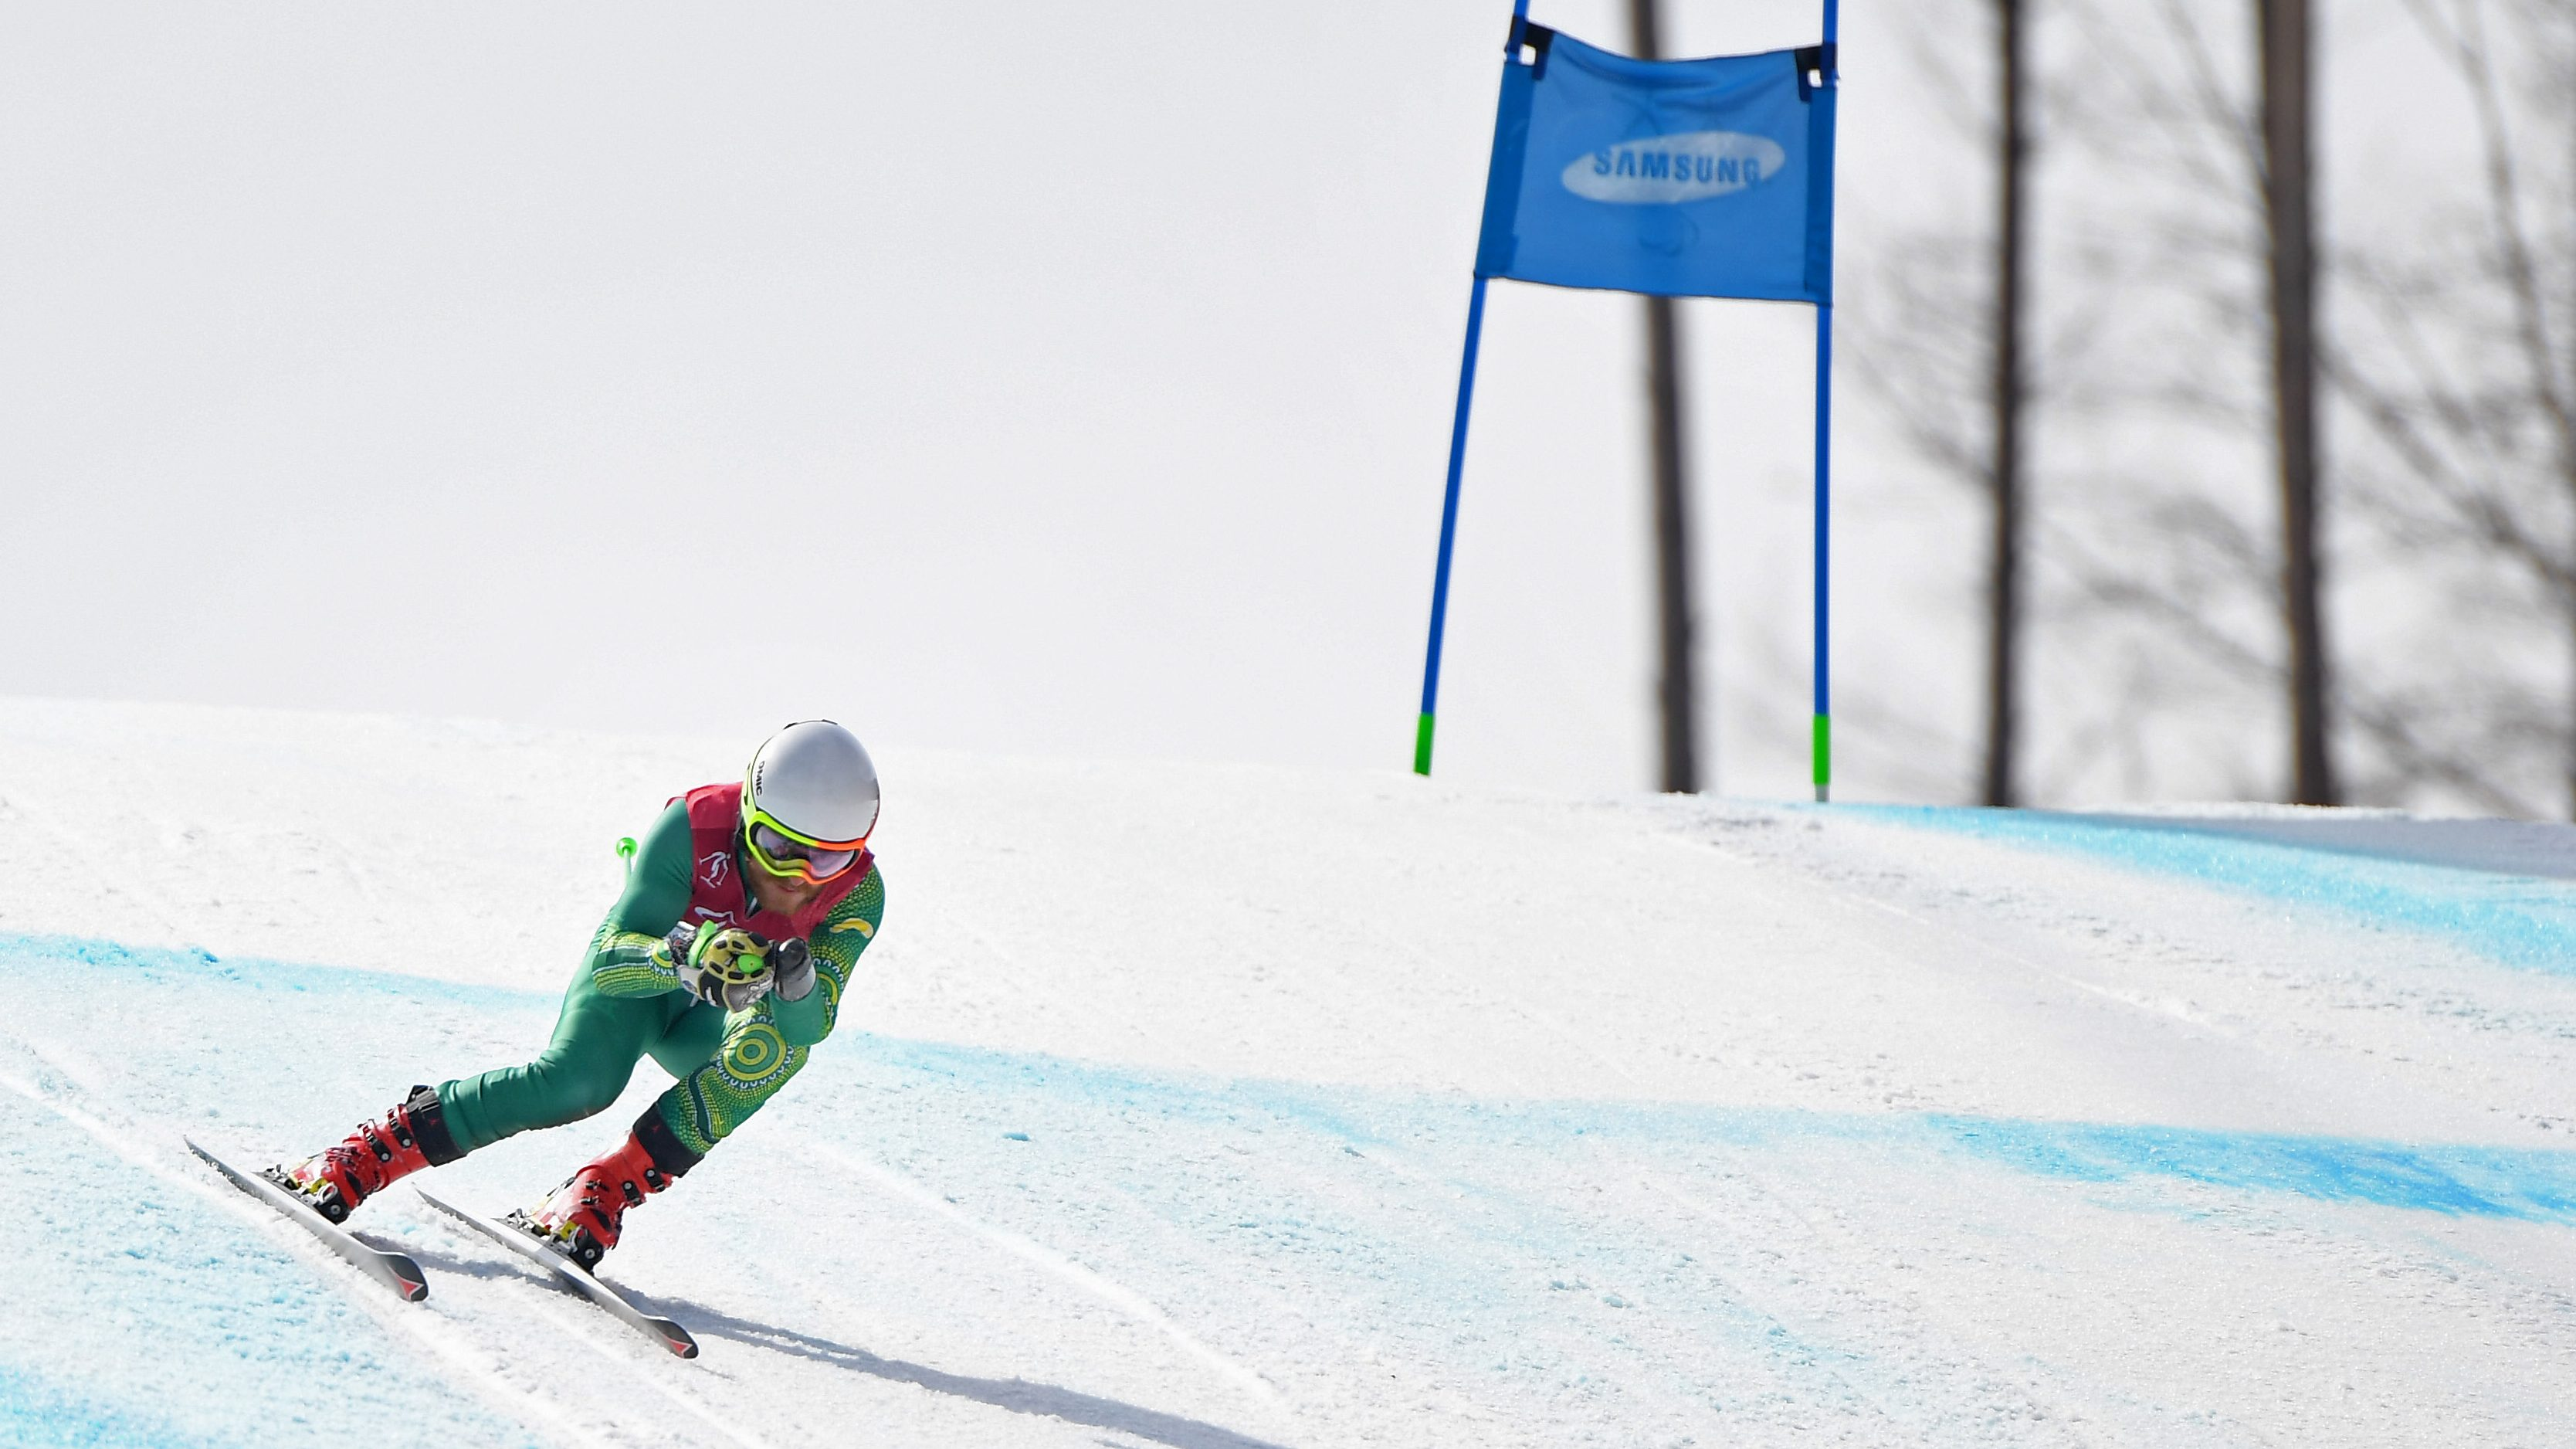 Australian Para-alpine skiers hit the slopes for the first time in PyeongChang